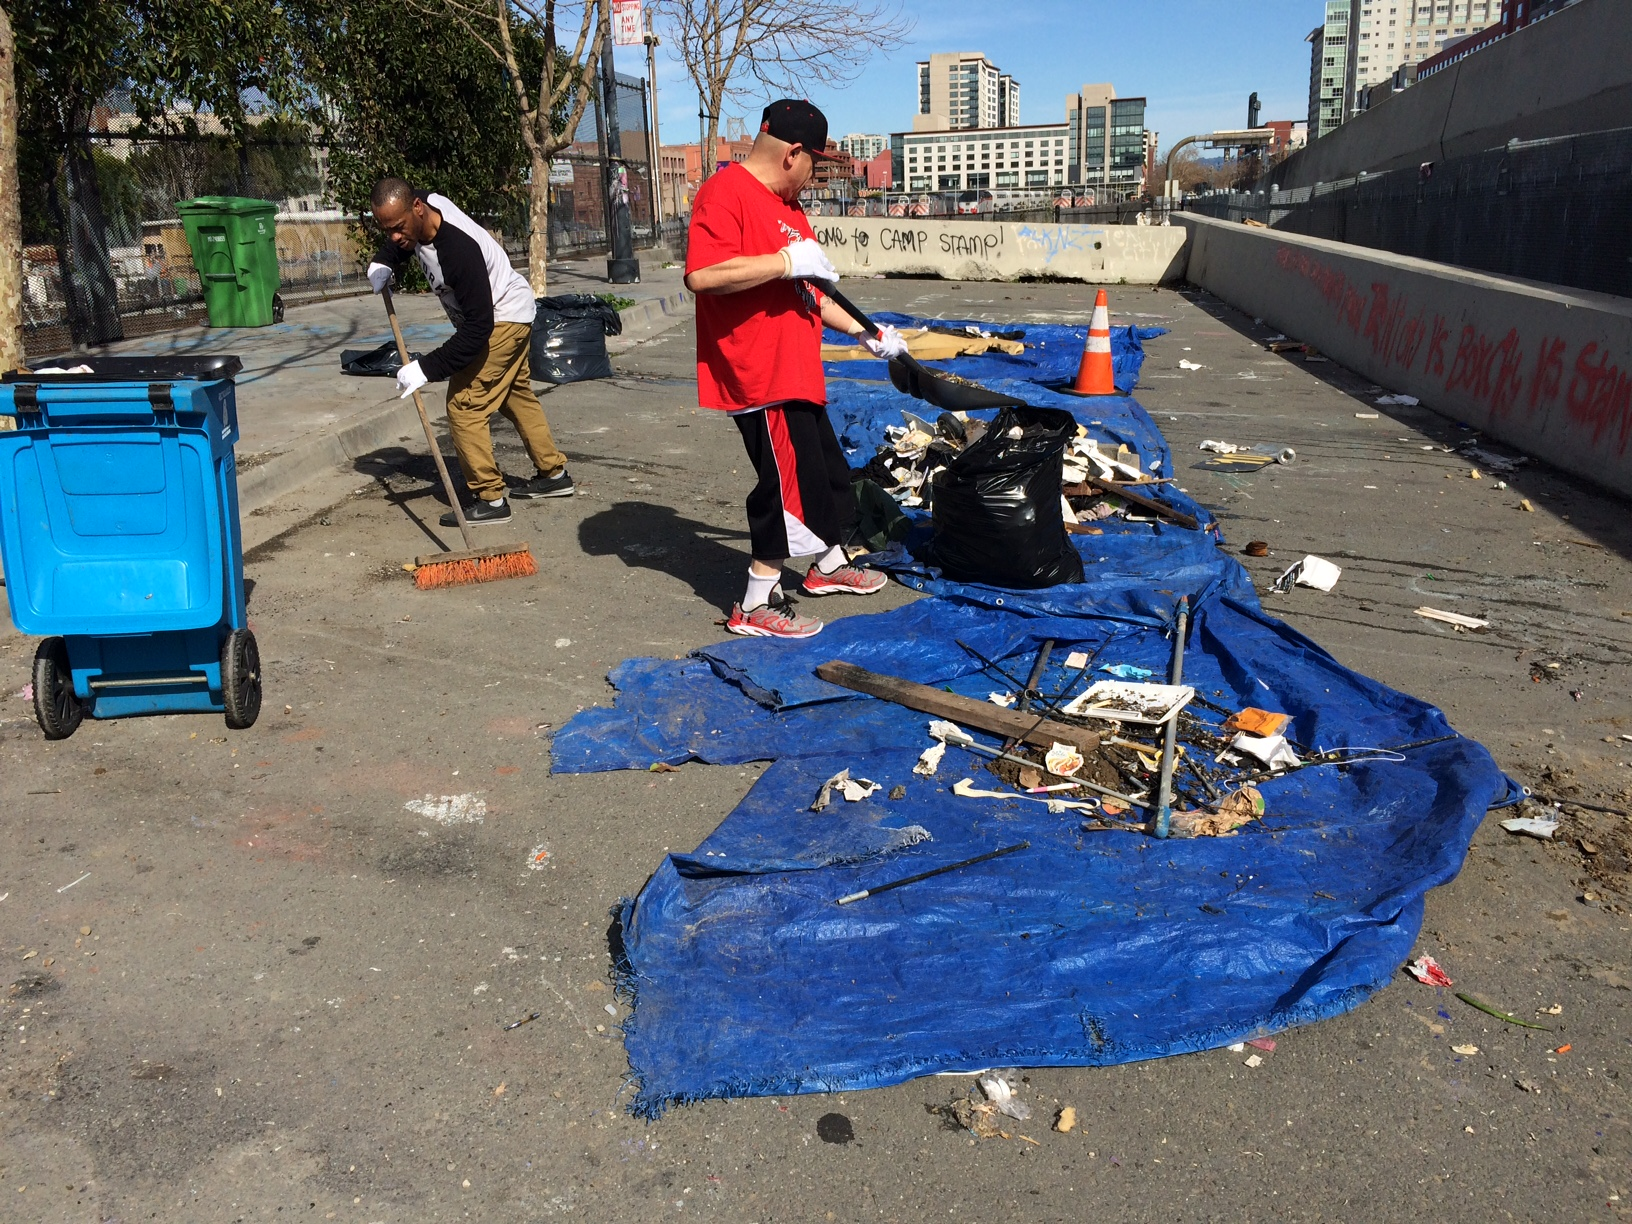 Encampment Residents in Mission Bay working together with SFHC (Winter 2017)